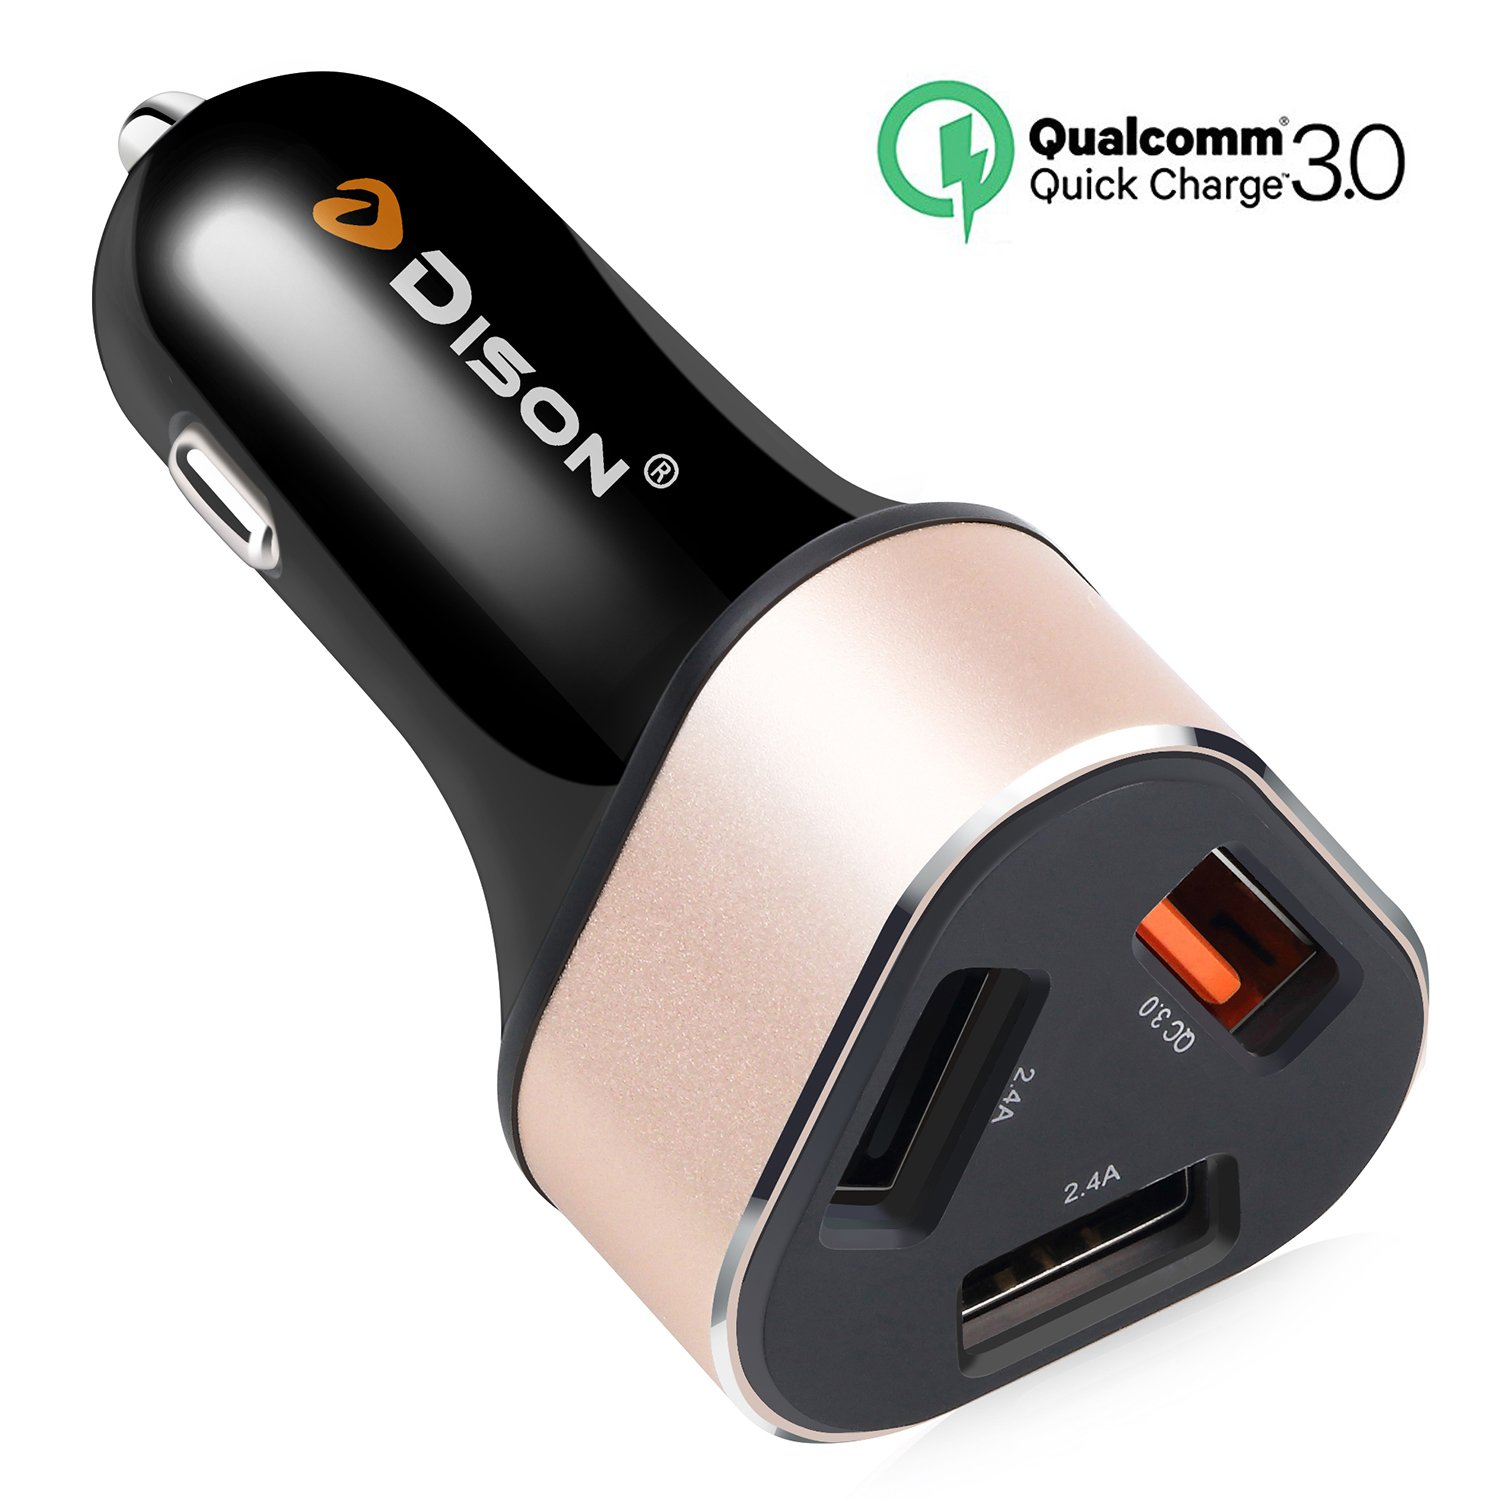 Amazon.com: Quick Charge 3.0 Car Charger Adapter, Dison 42 W Car Charger with QC 3.0 and 5V/2.4A Dual Smart Port for iPhone X / 8 / 7 / Plus, ...